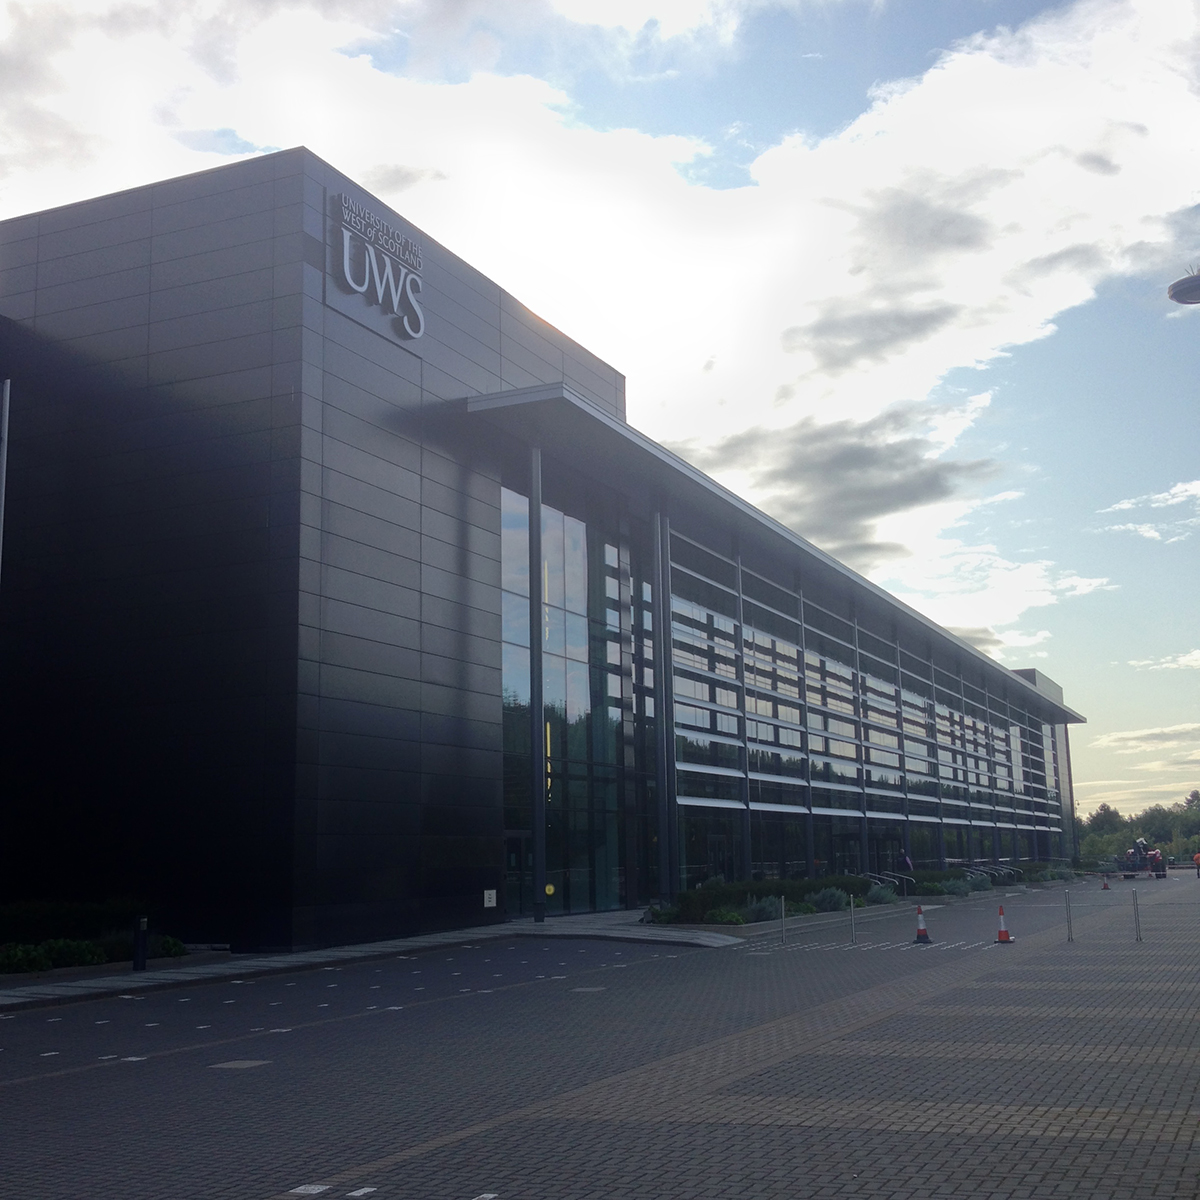 UWS Lanarkshire campus